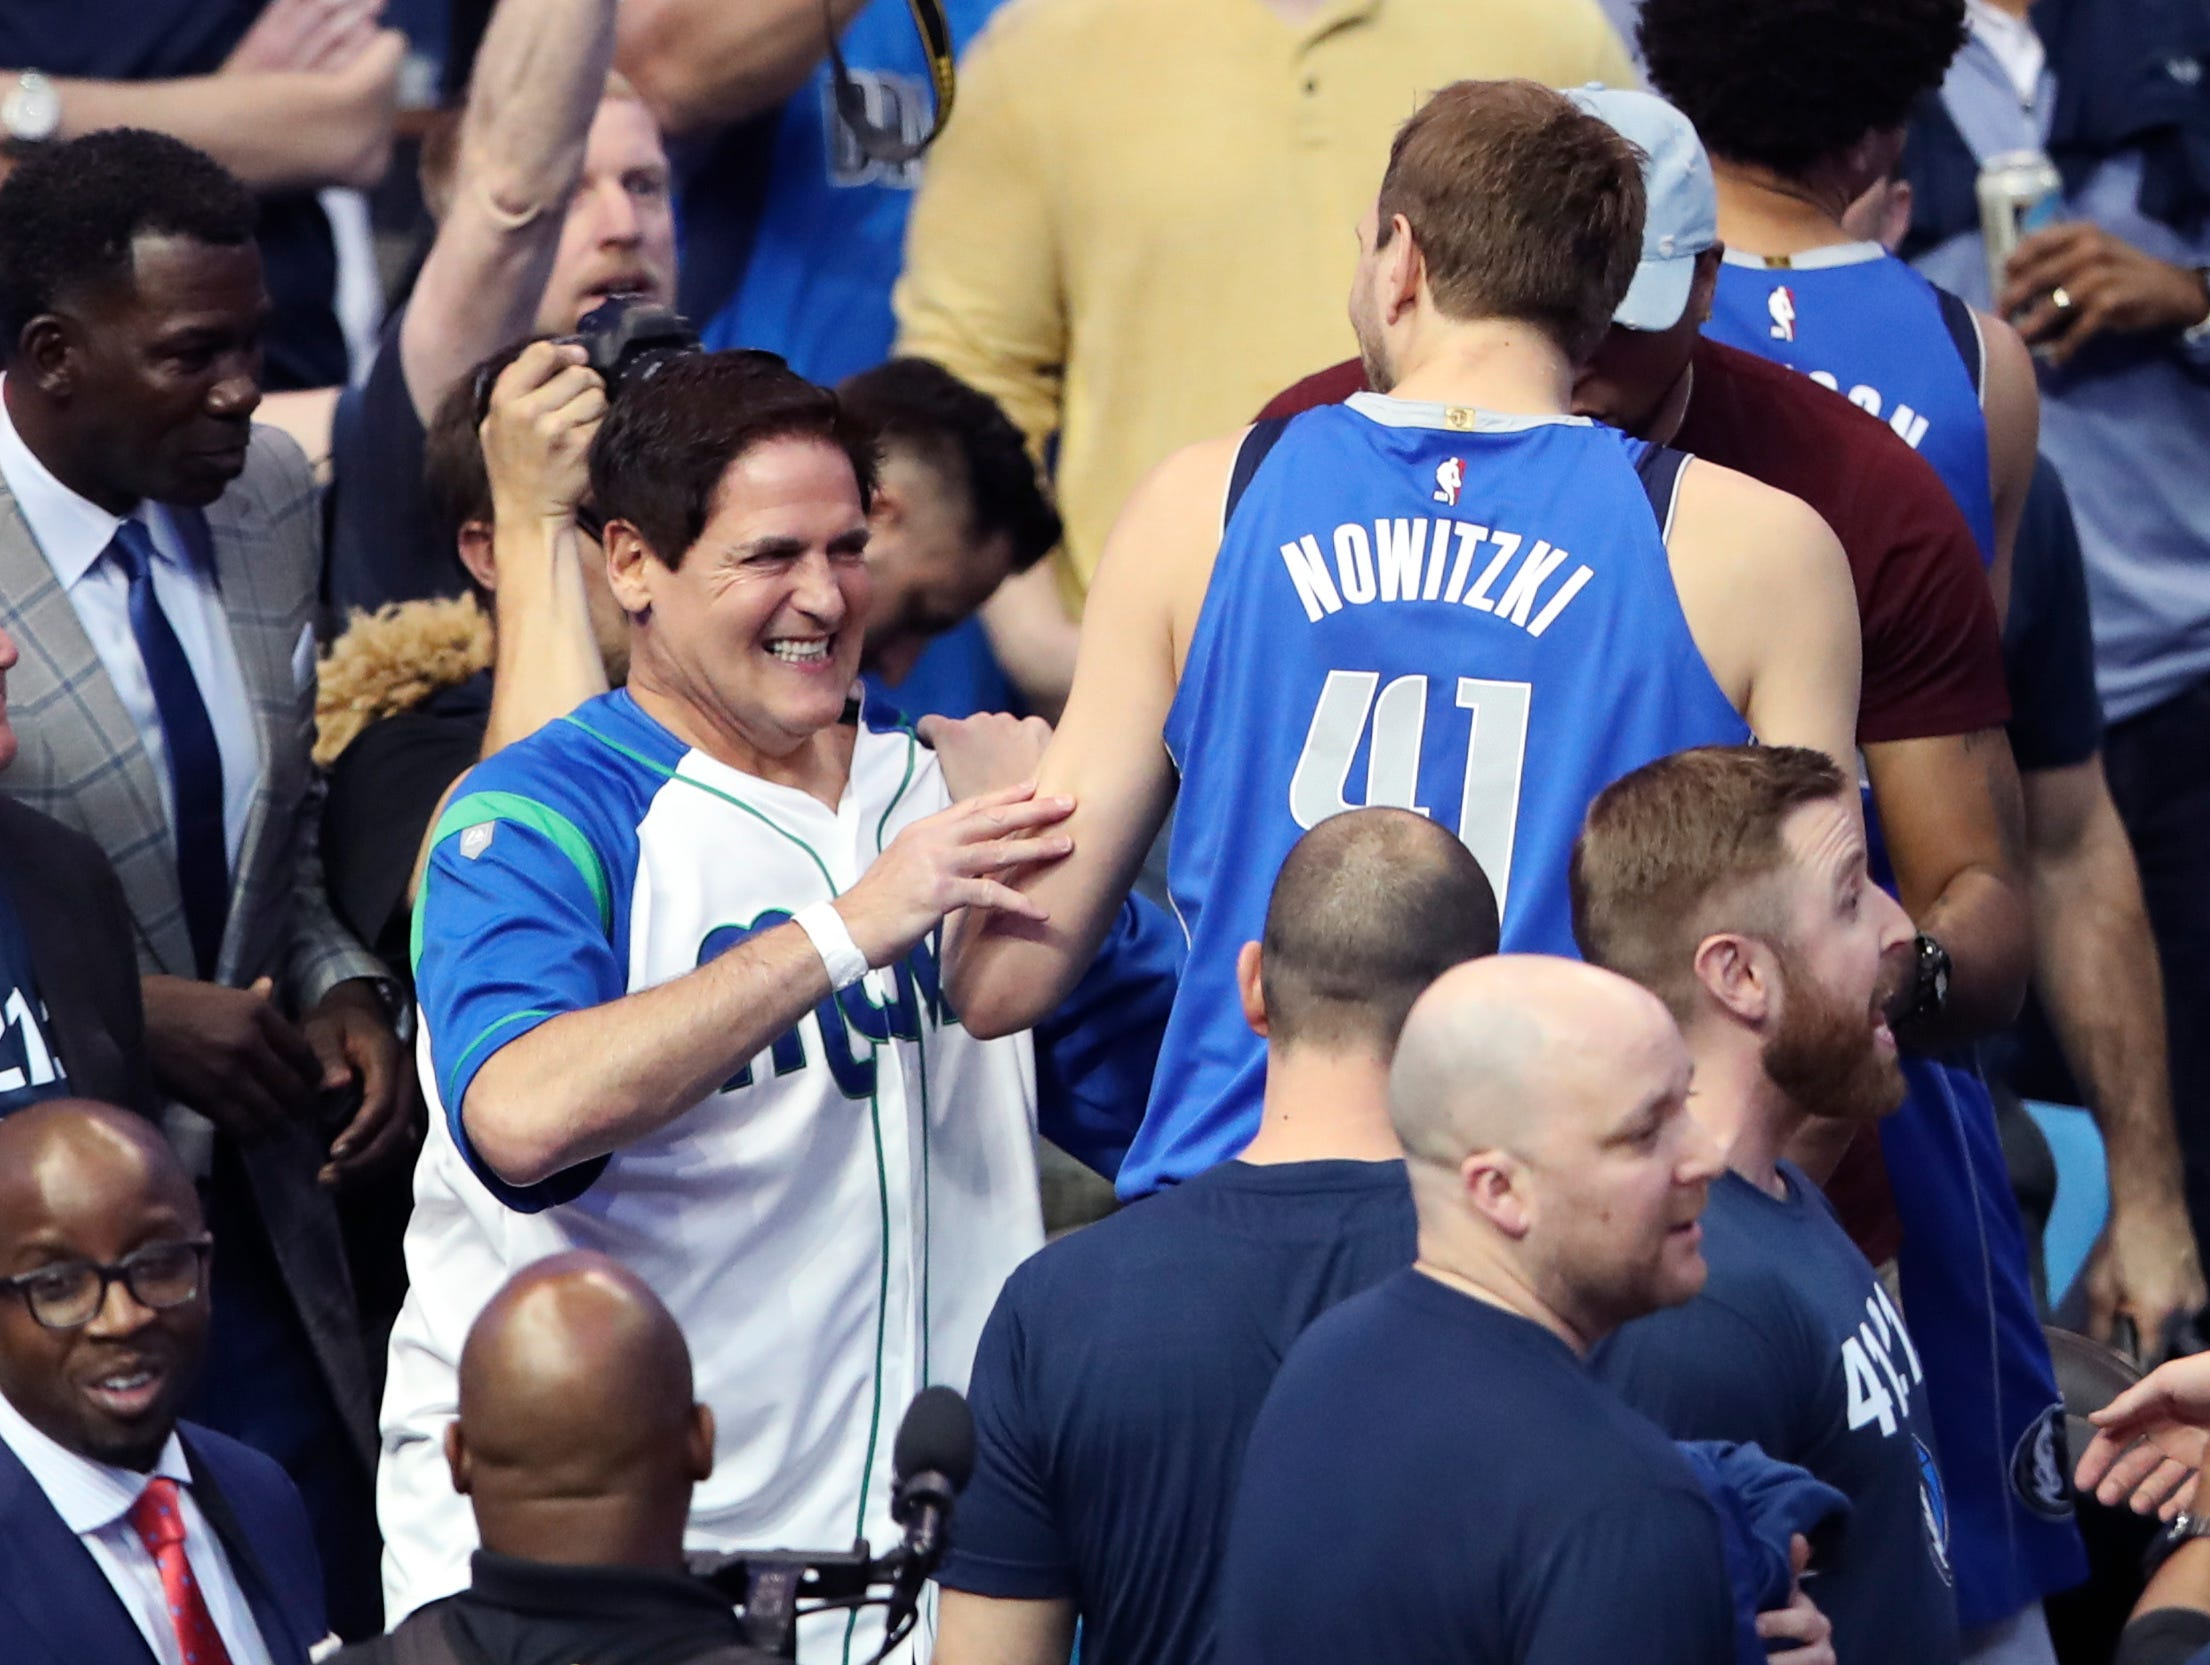 Apr 9, 2019; Dallas, TX, USA; Dallas Mavericks owner Mark Cuban laughs with forward Dirk Nowitzki (41) before the game against the Phoenix Suns at American Airlines Center. Mandatory Credit: Kevin Jairaj-USA TODAY Sports